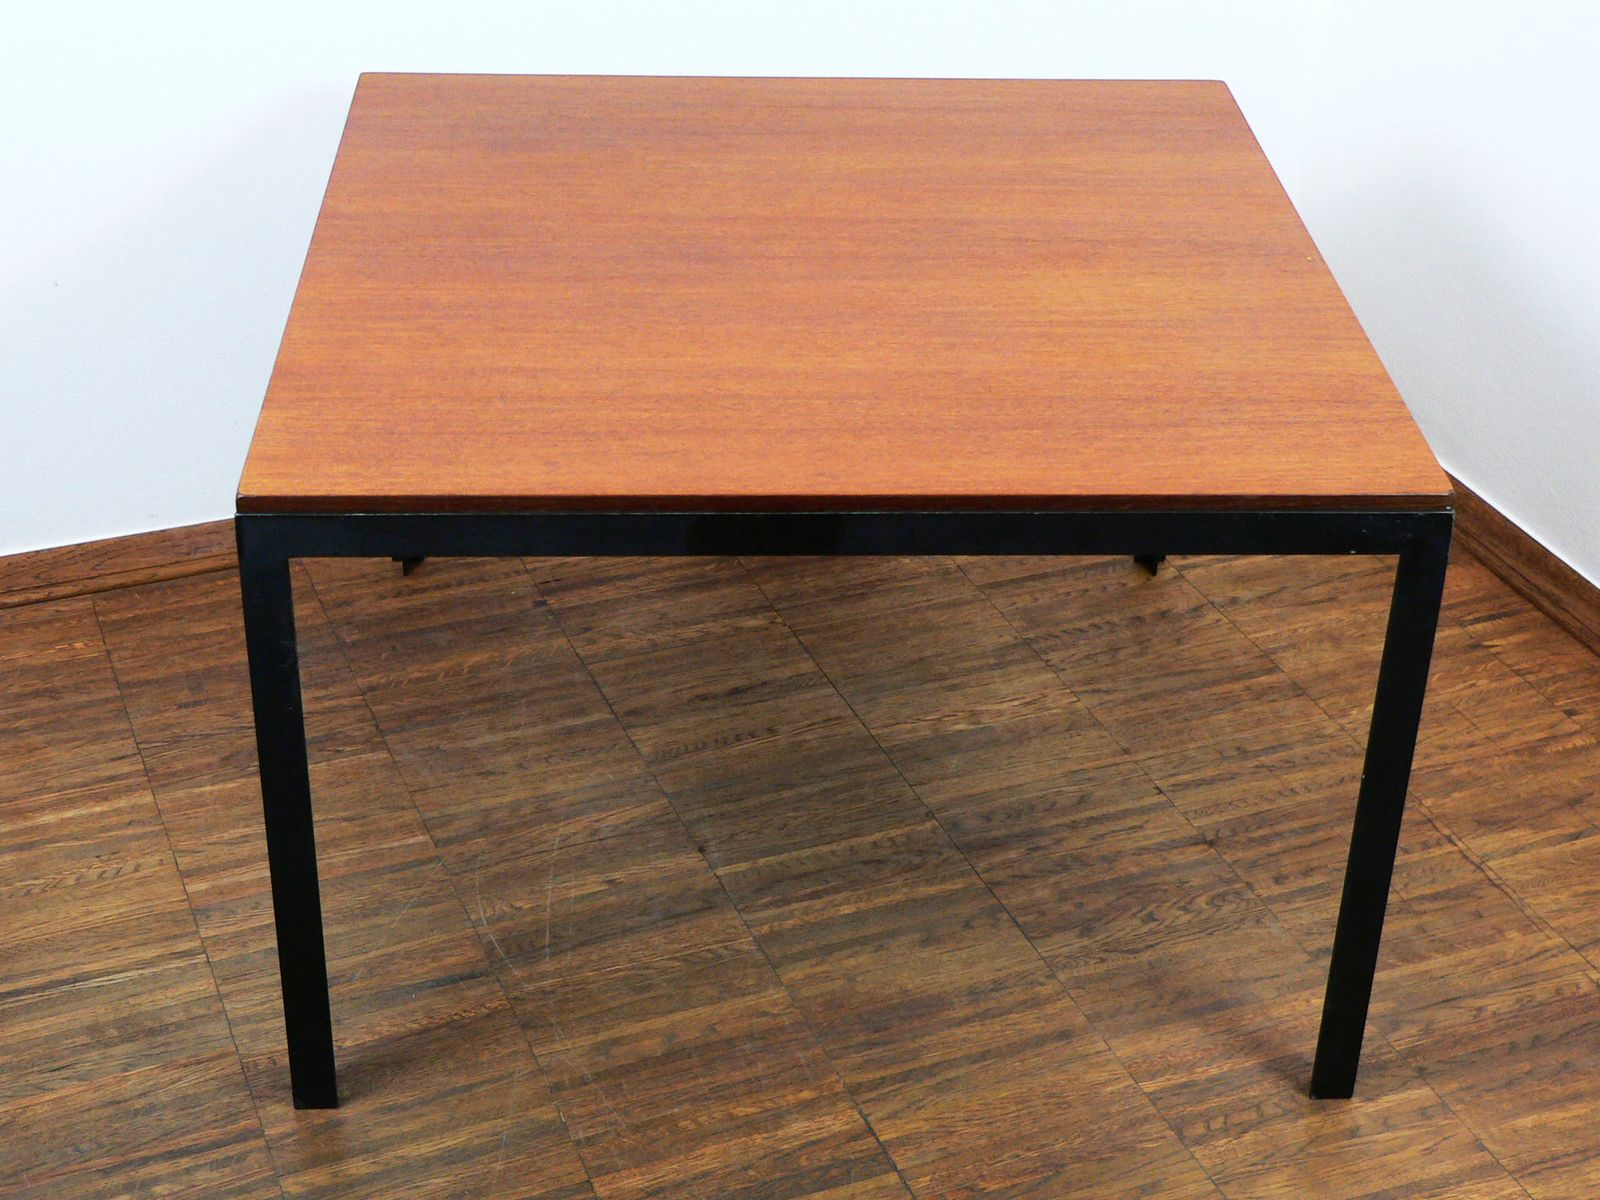 t-angle coffee table by florence knoll for knoll, 1950s for sale